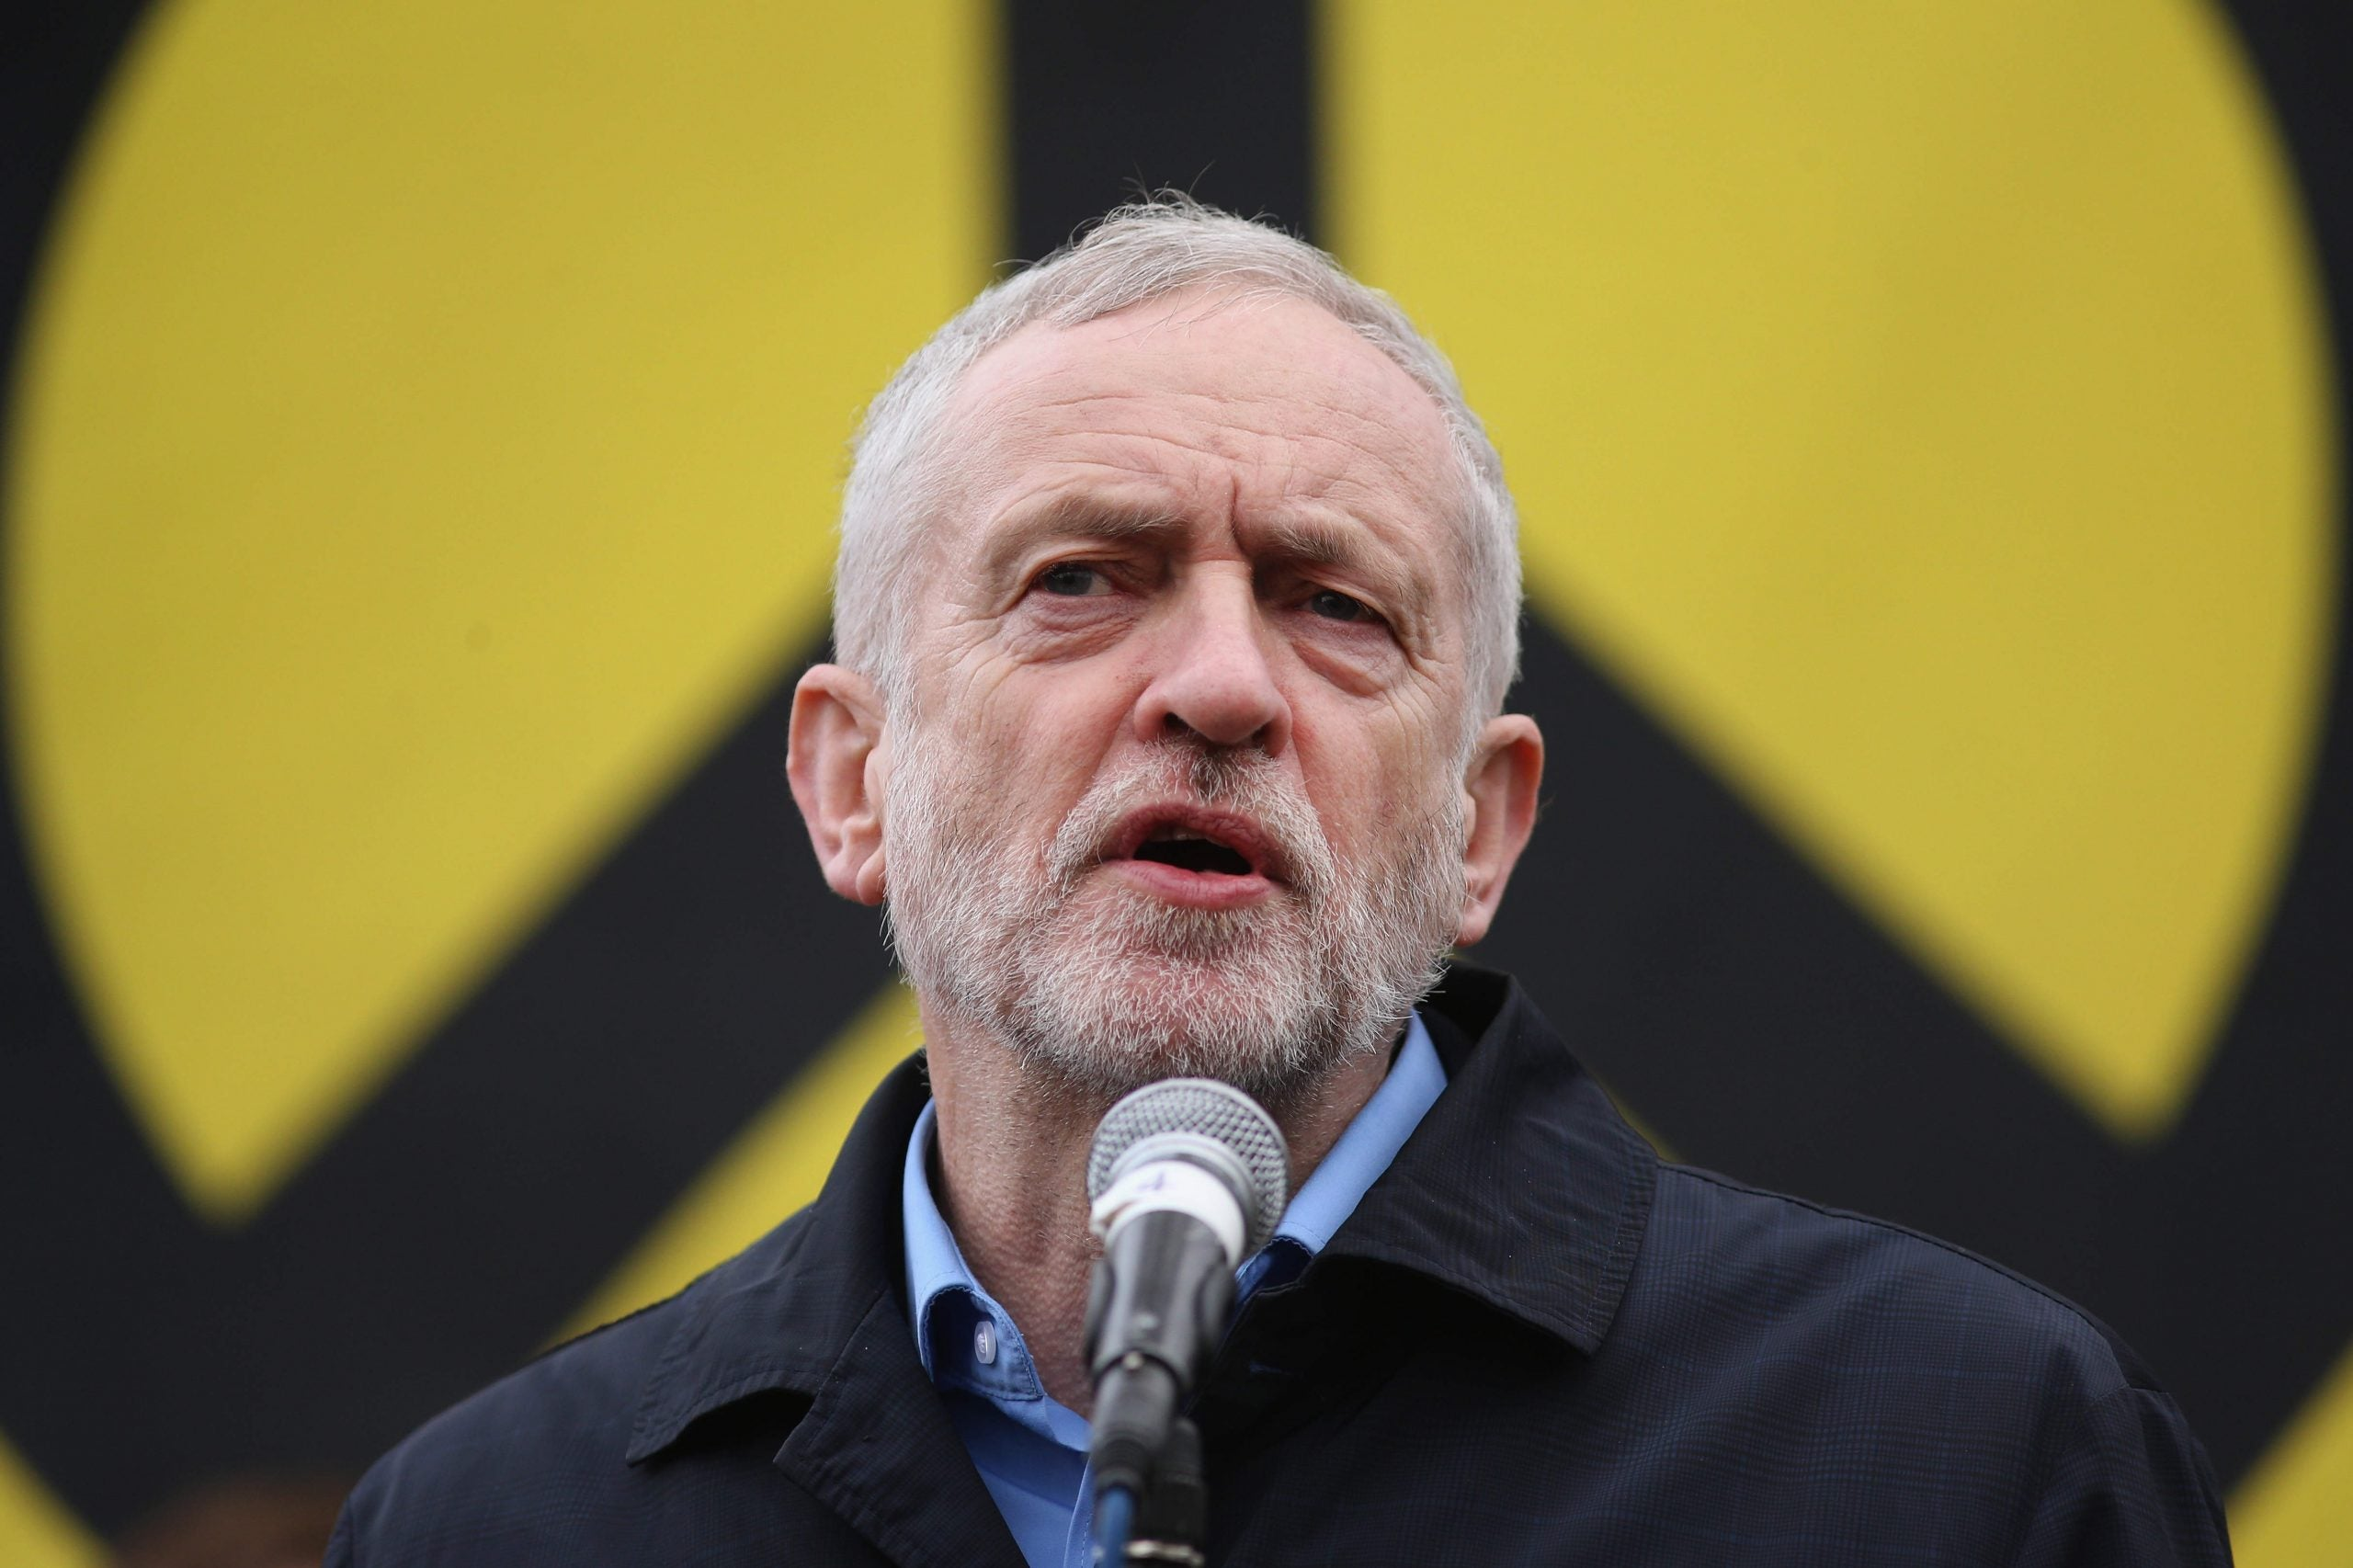 Jeremy Corbyn and David Cameron won't face each other in 2020 – but who will fall first?